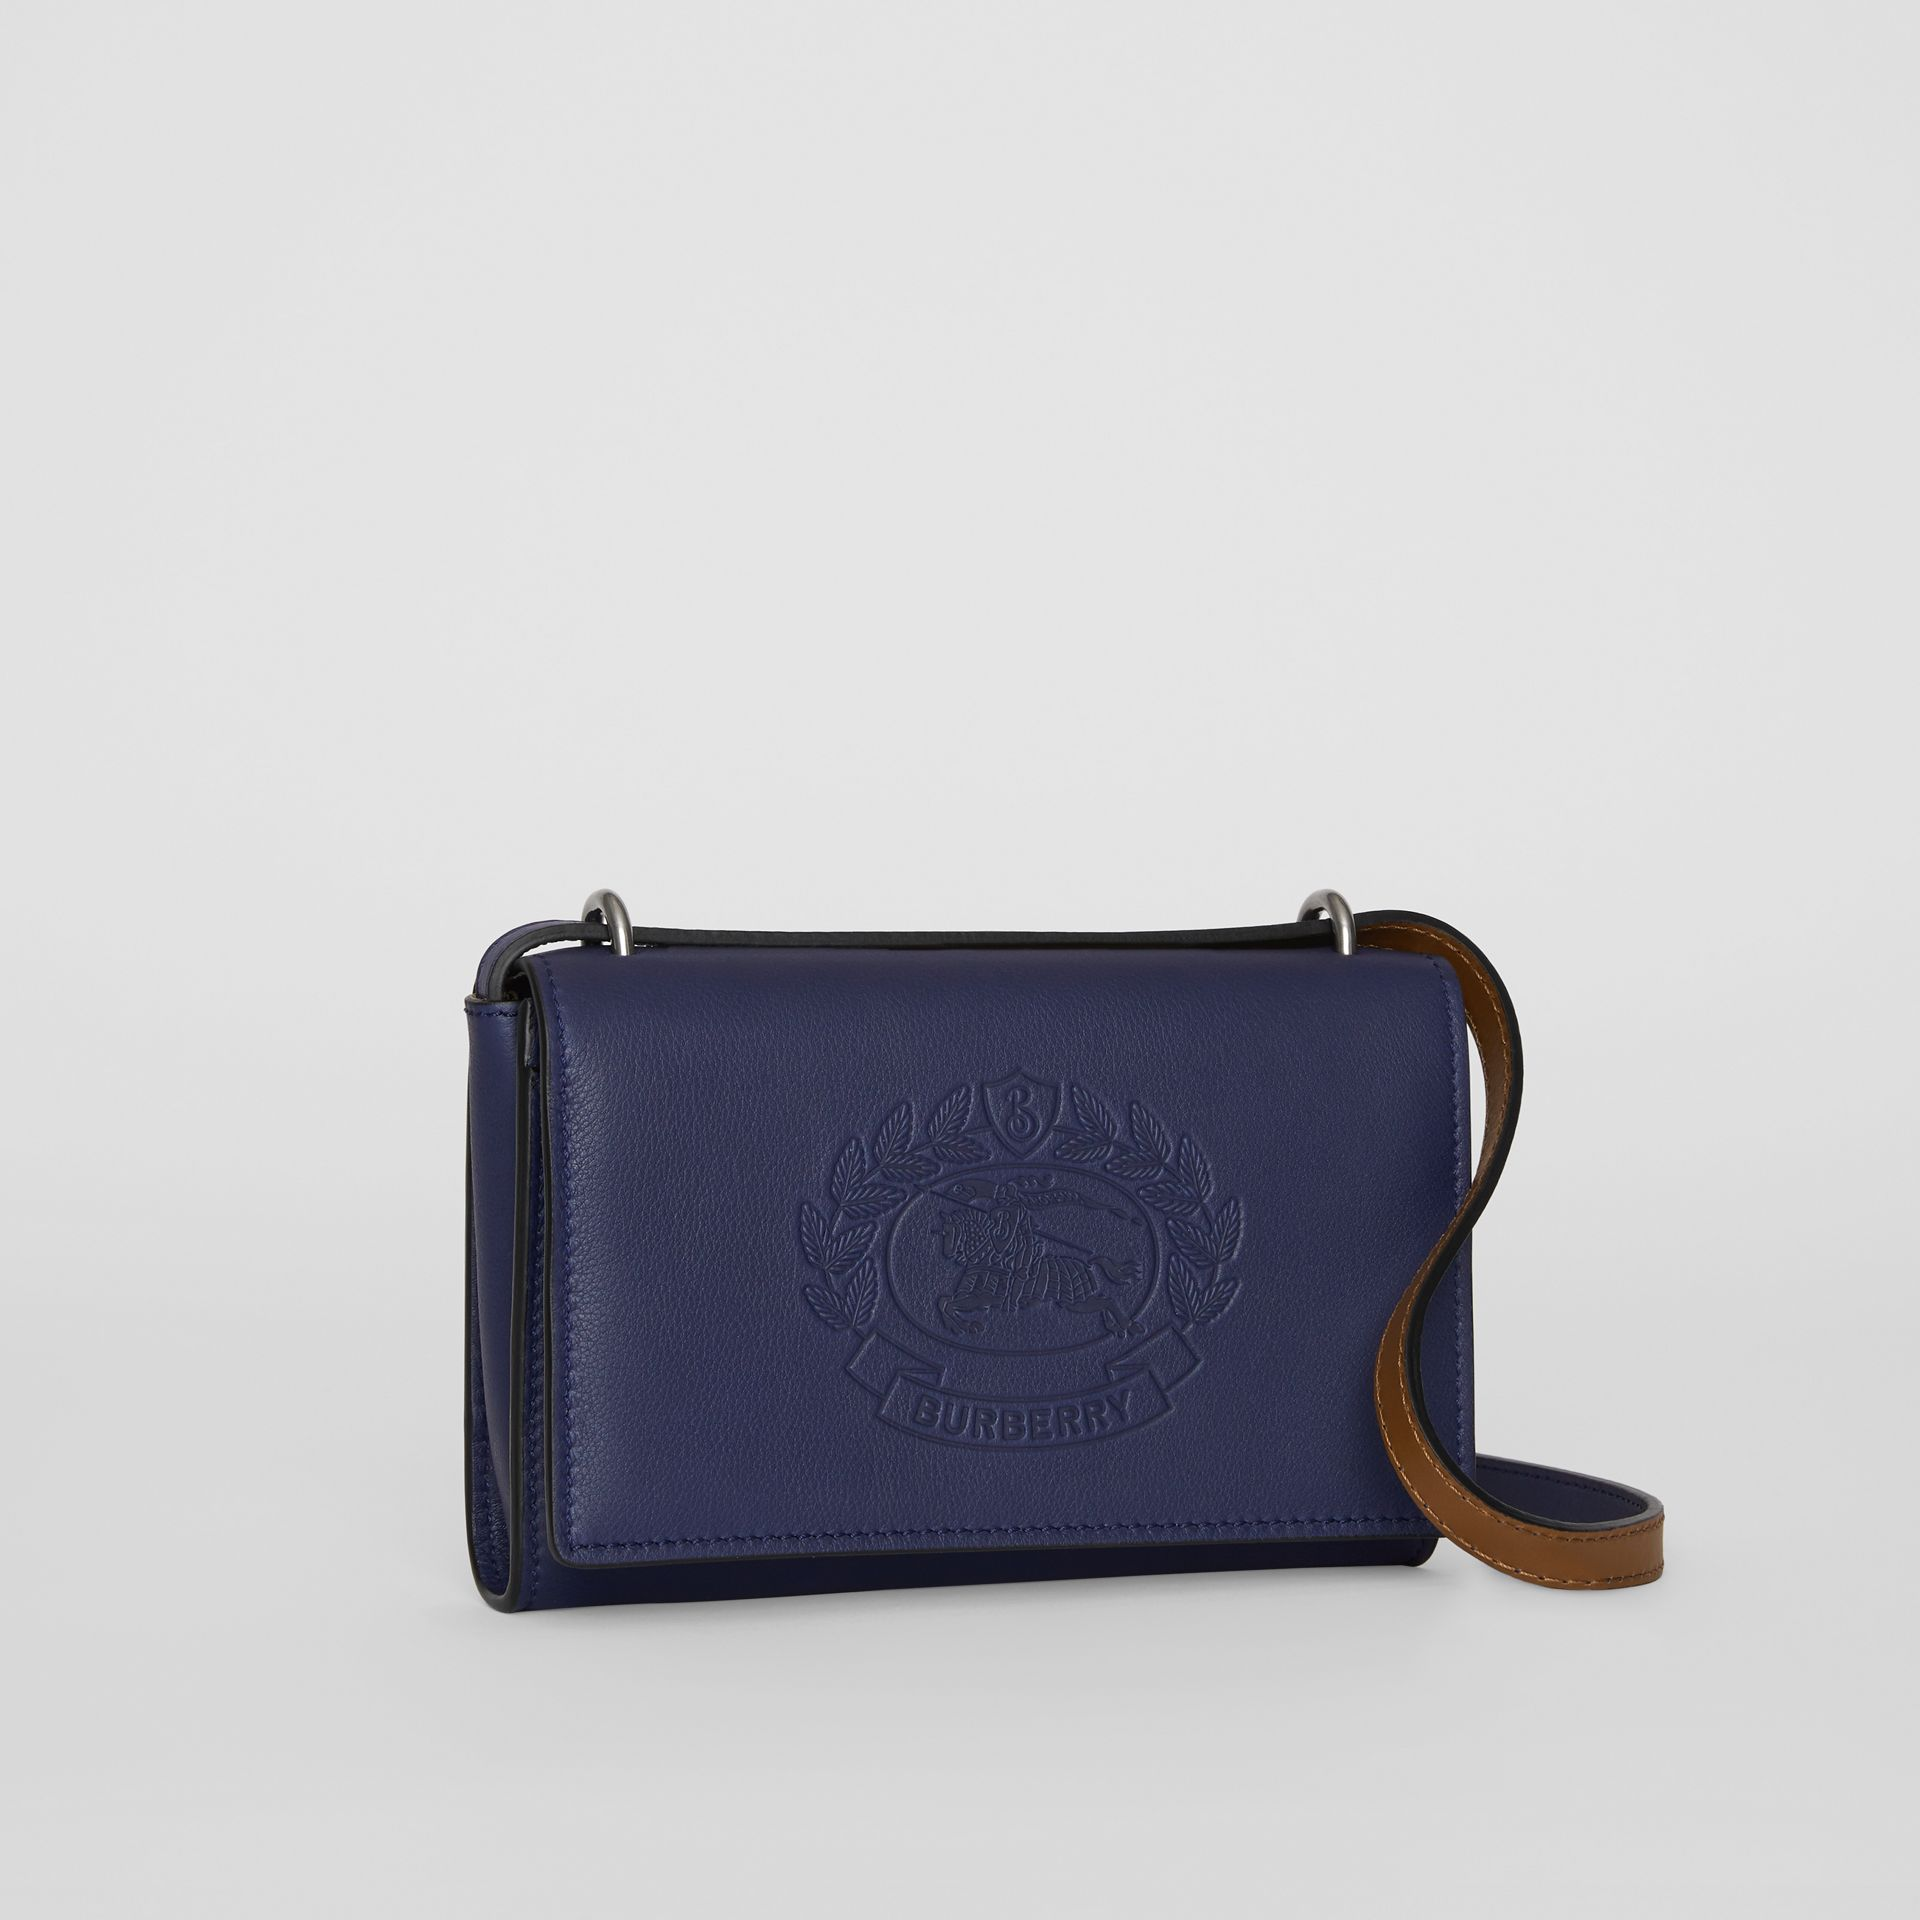 Embossed Crest Leather Wallet with Detachable Strap in Regency Blue - Women | Burberry United Kingdom - gallery image 4